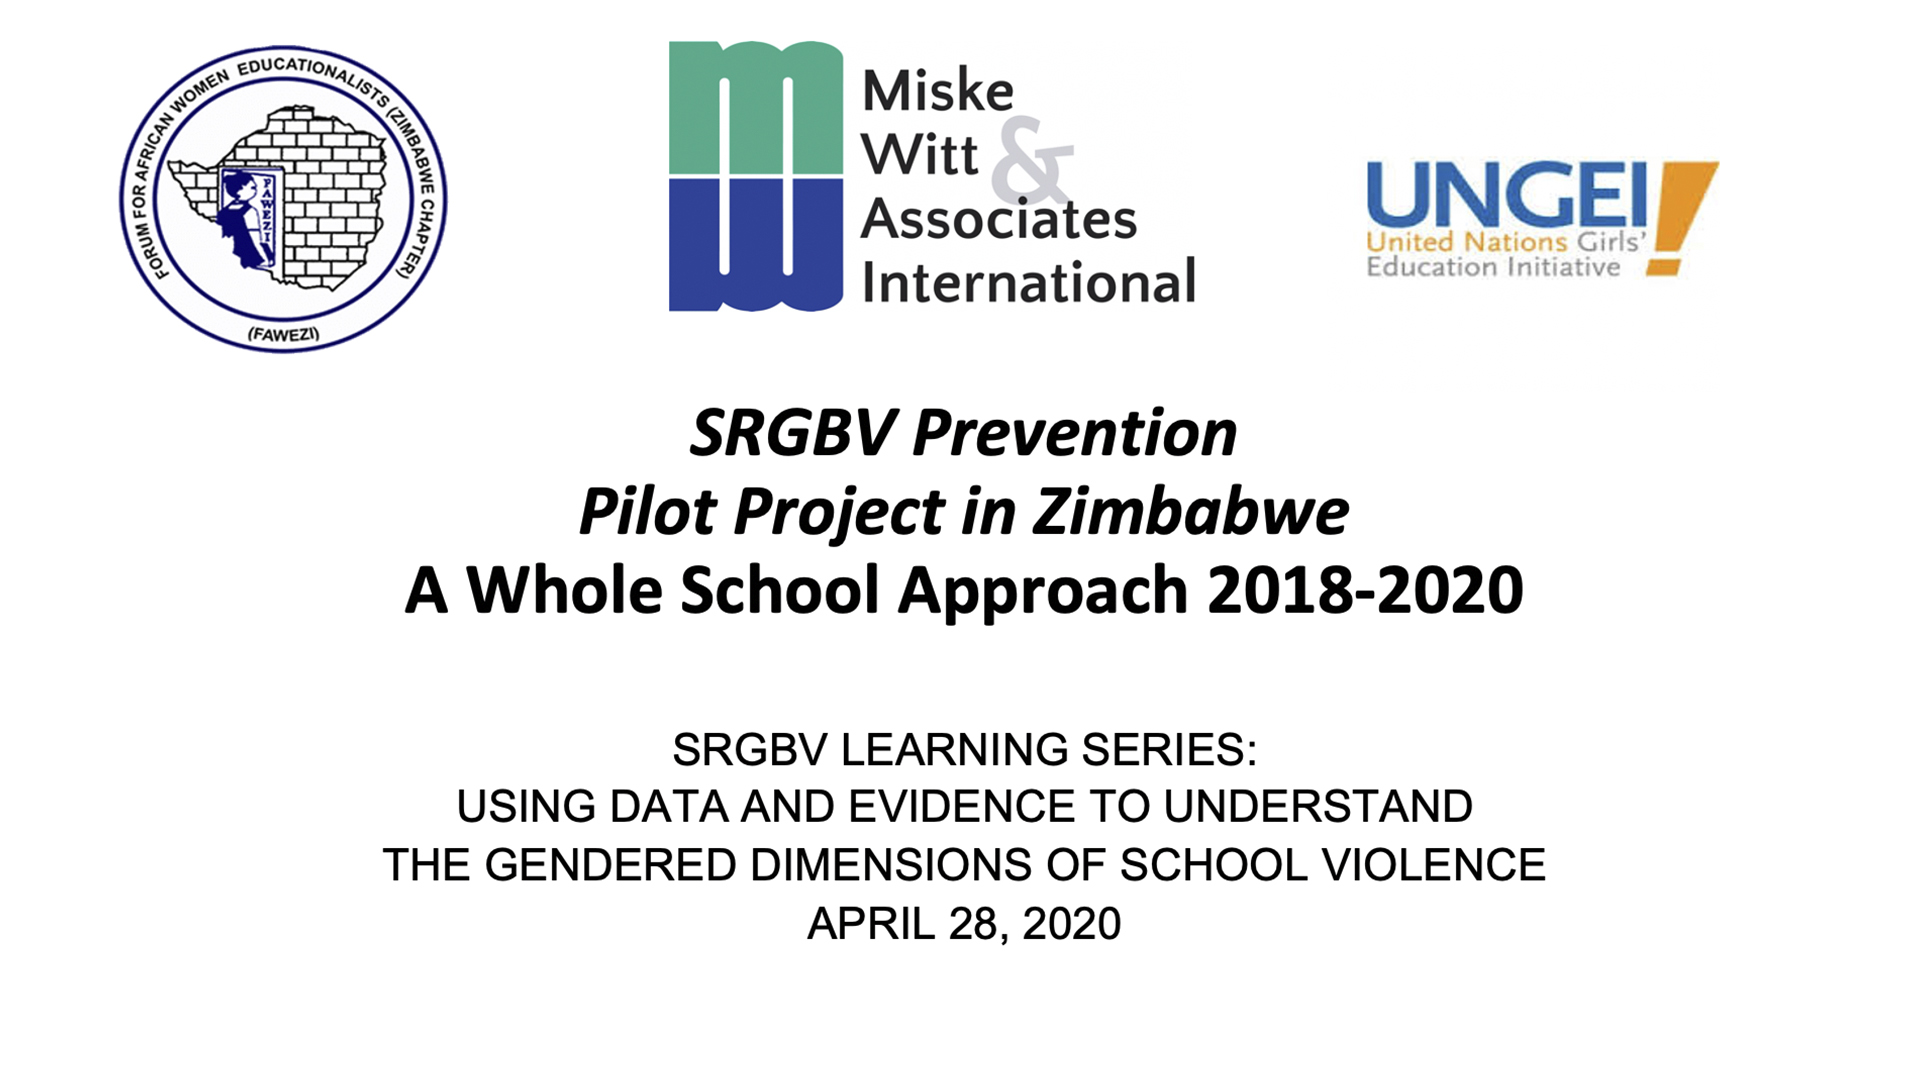 SRGBV Prevention Pilot Project in Zimbabwe